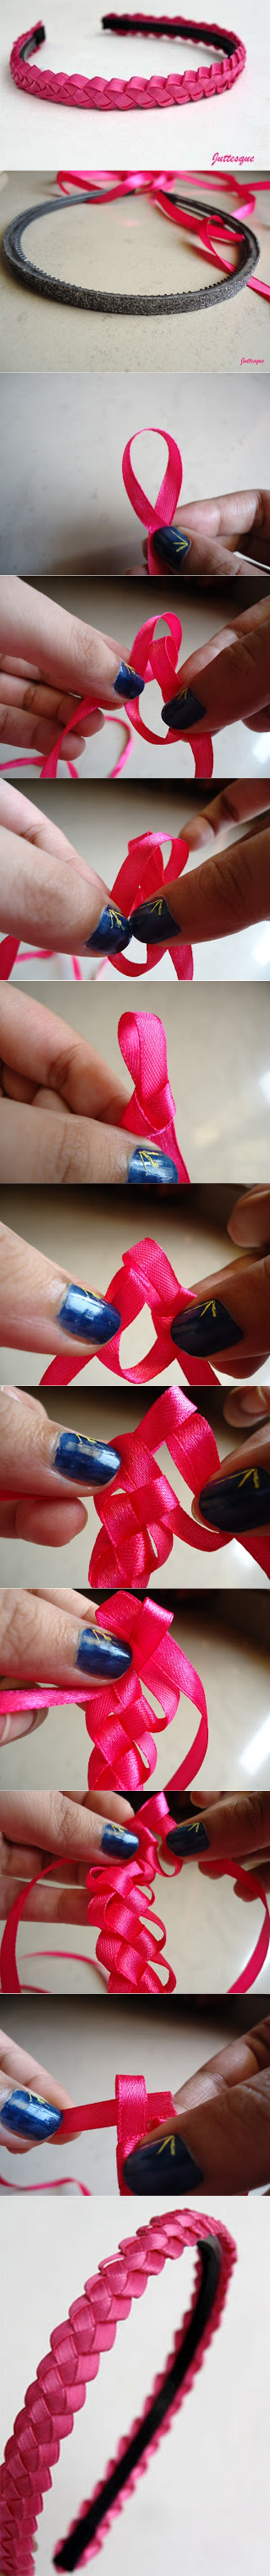 braided ribbon hairband tutorial